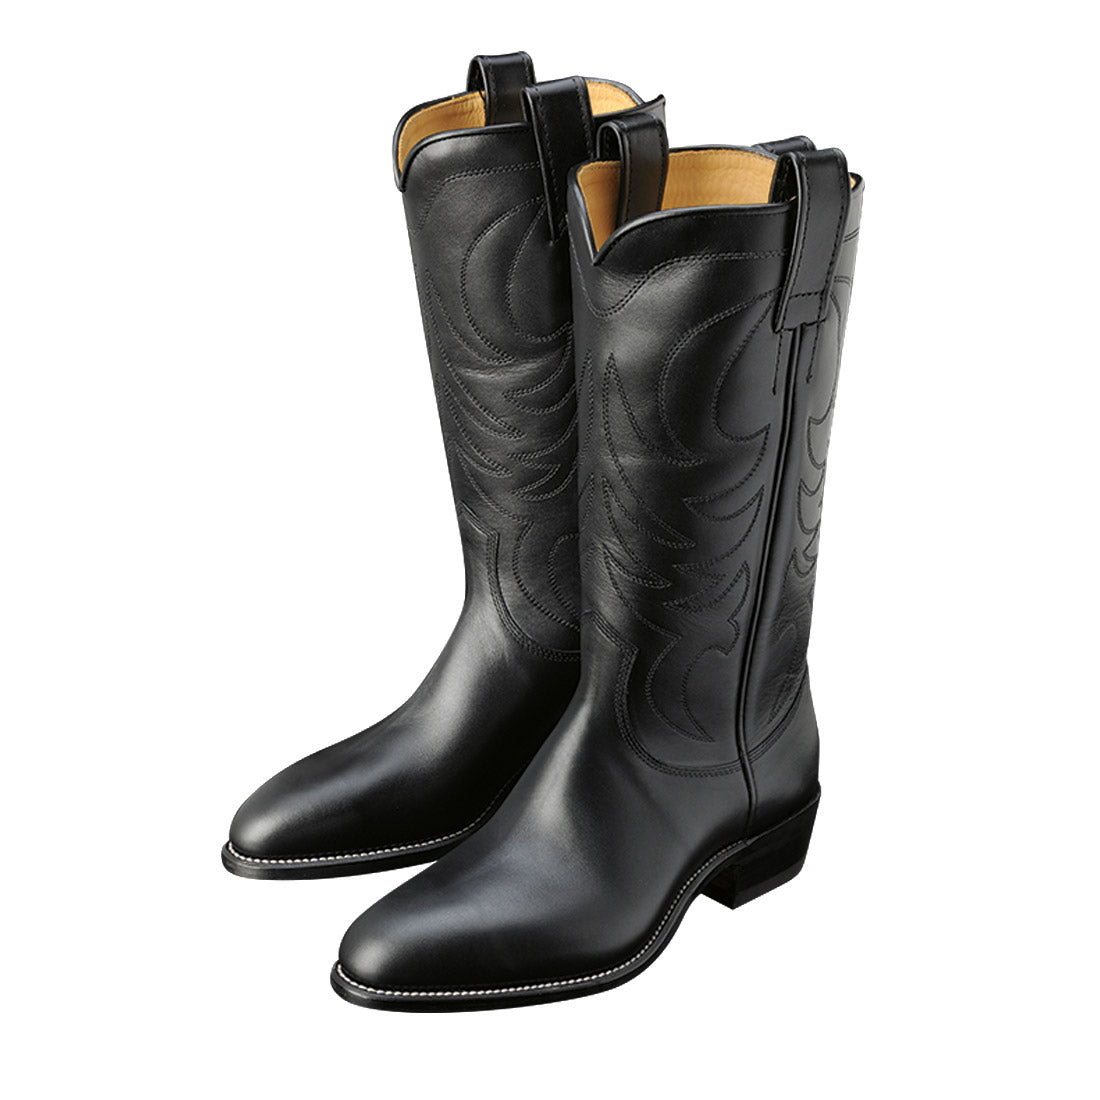 R.M.Williams Executive Boots